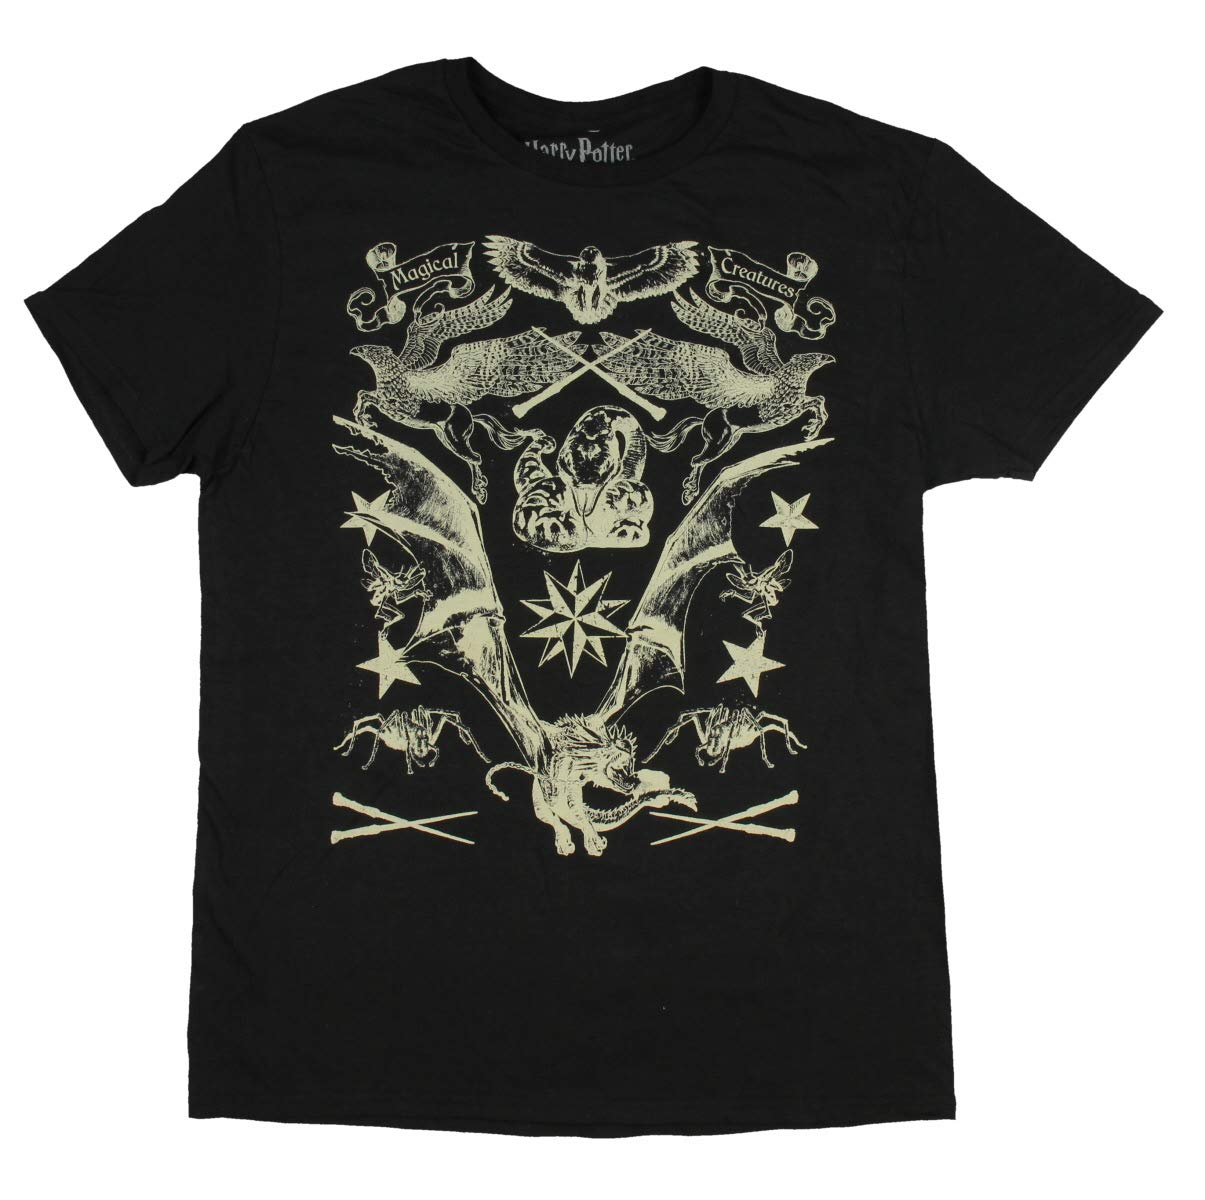 Harry Potter Shirt Magical Creatures Hippogriff Dragon Acromatula Nagini Sketch Drawings T